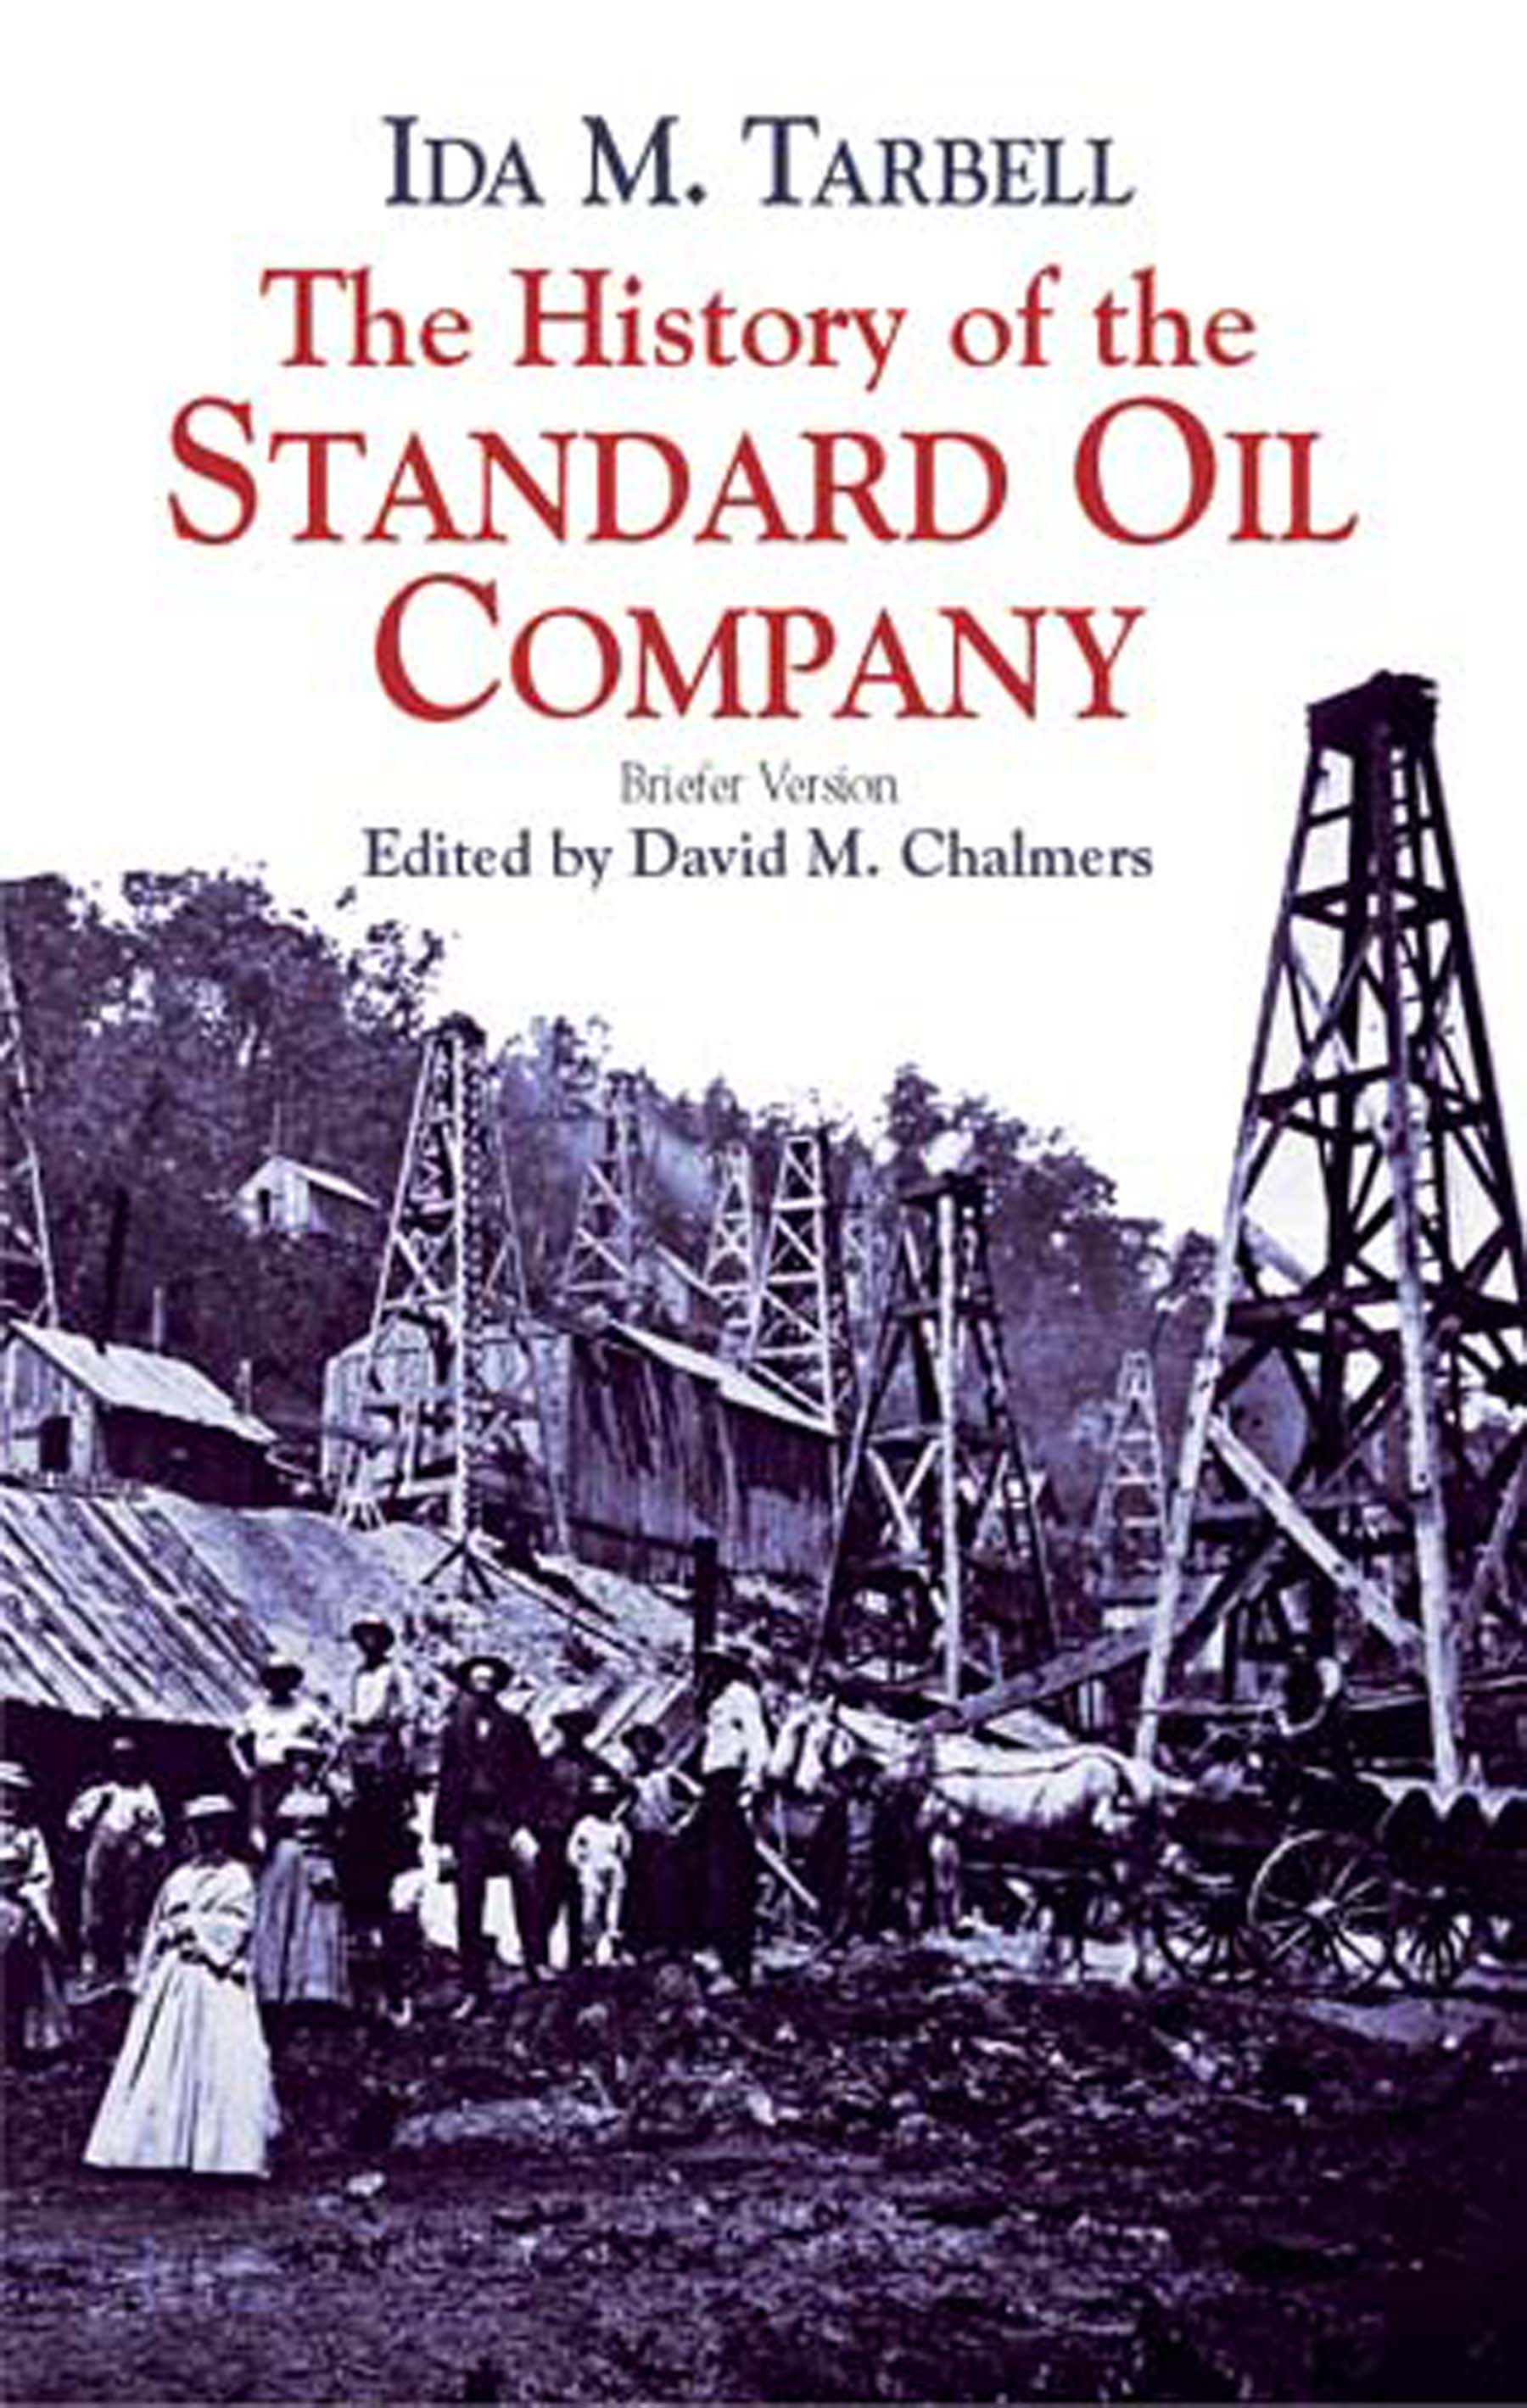 Download Ebook The History of the Standard Oil Company by Ida M. Tarbell Pdf